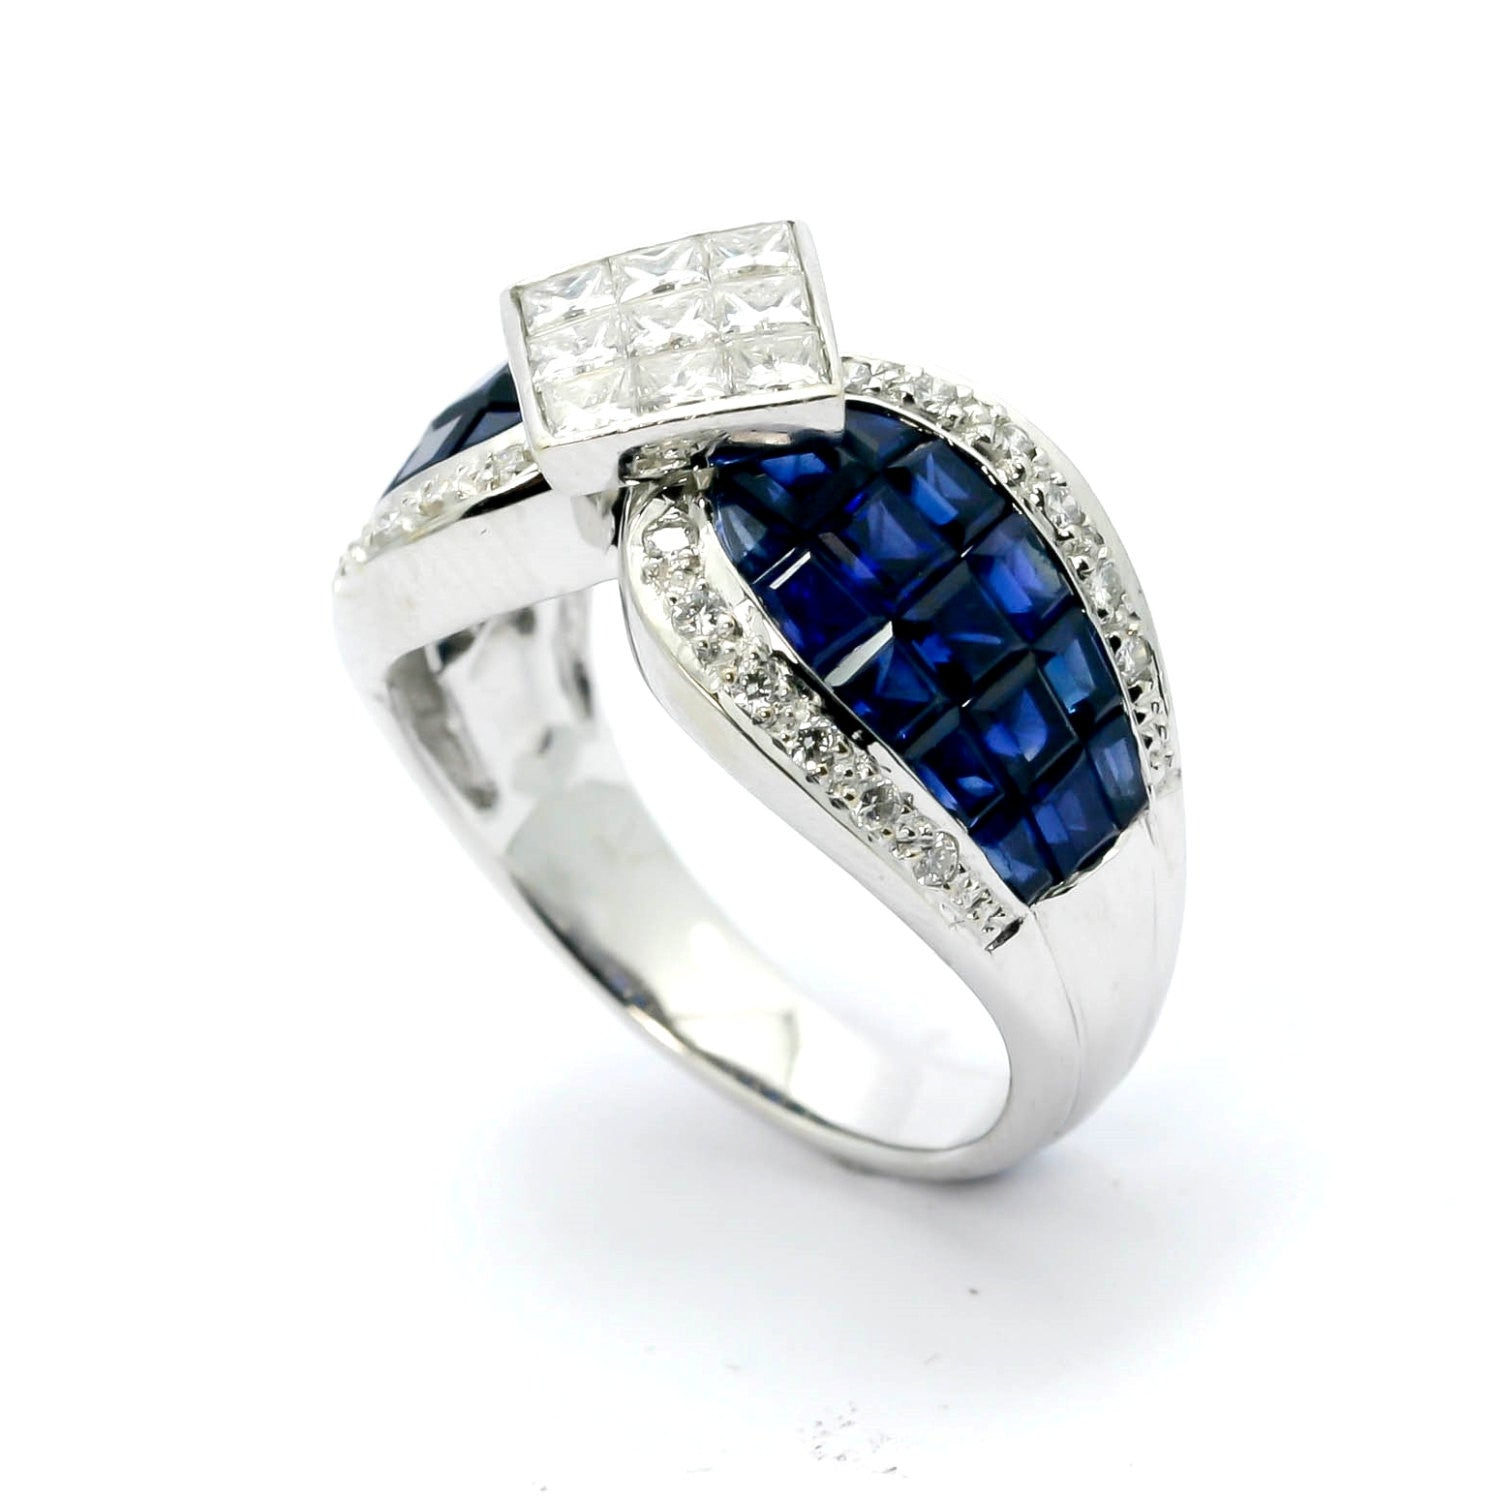 Blue Sapphire Gemstone & Diamond Cocktail Ring